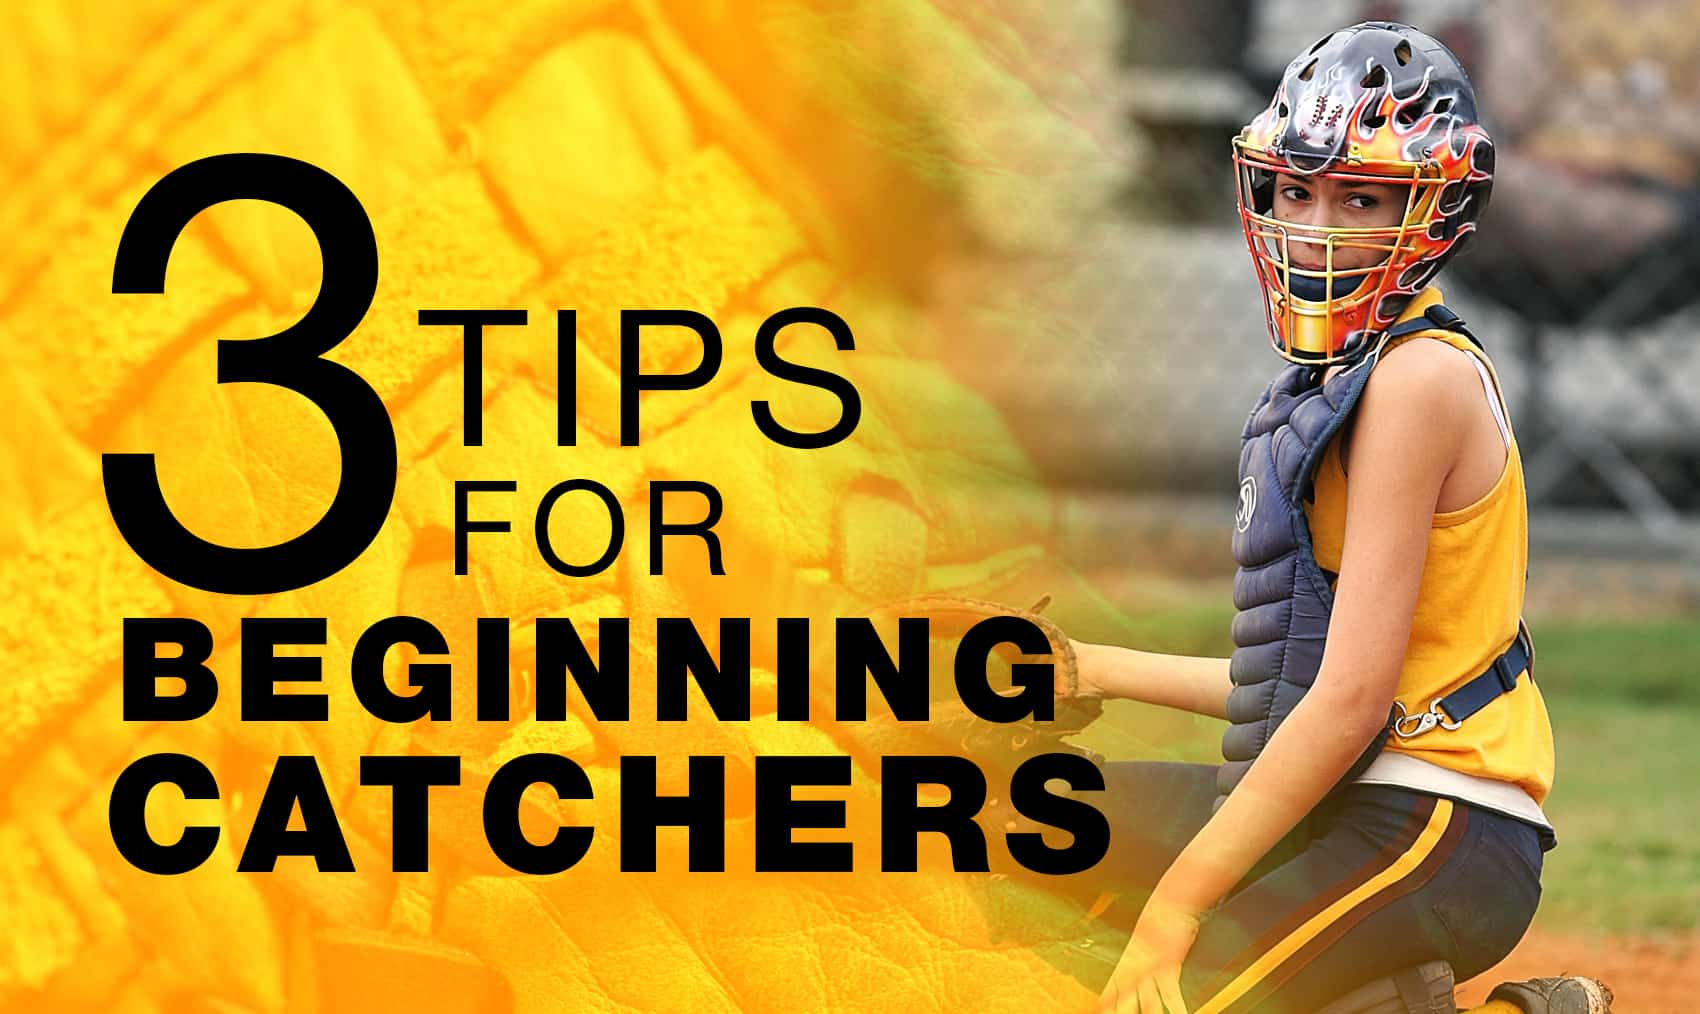 3 Tips For Beginning Catchers